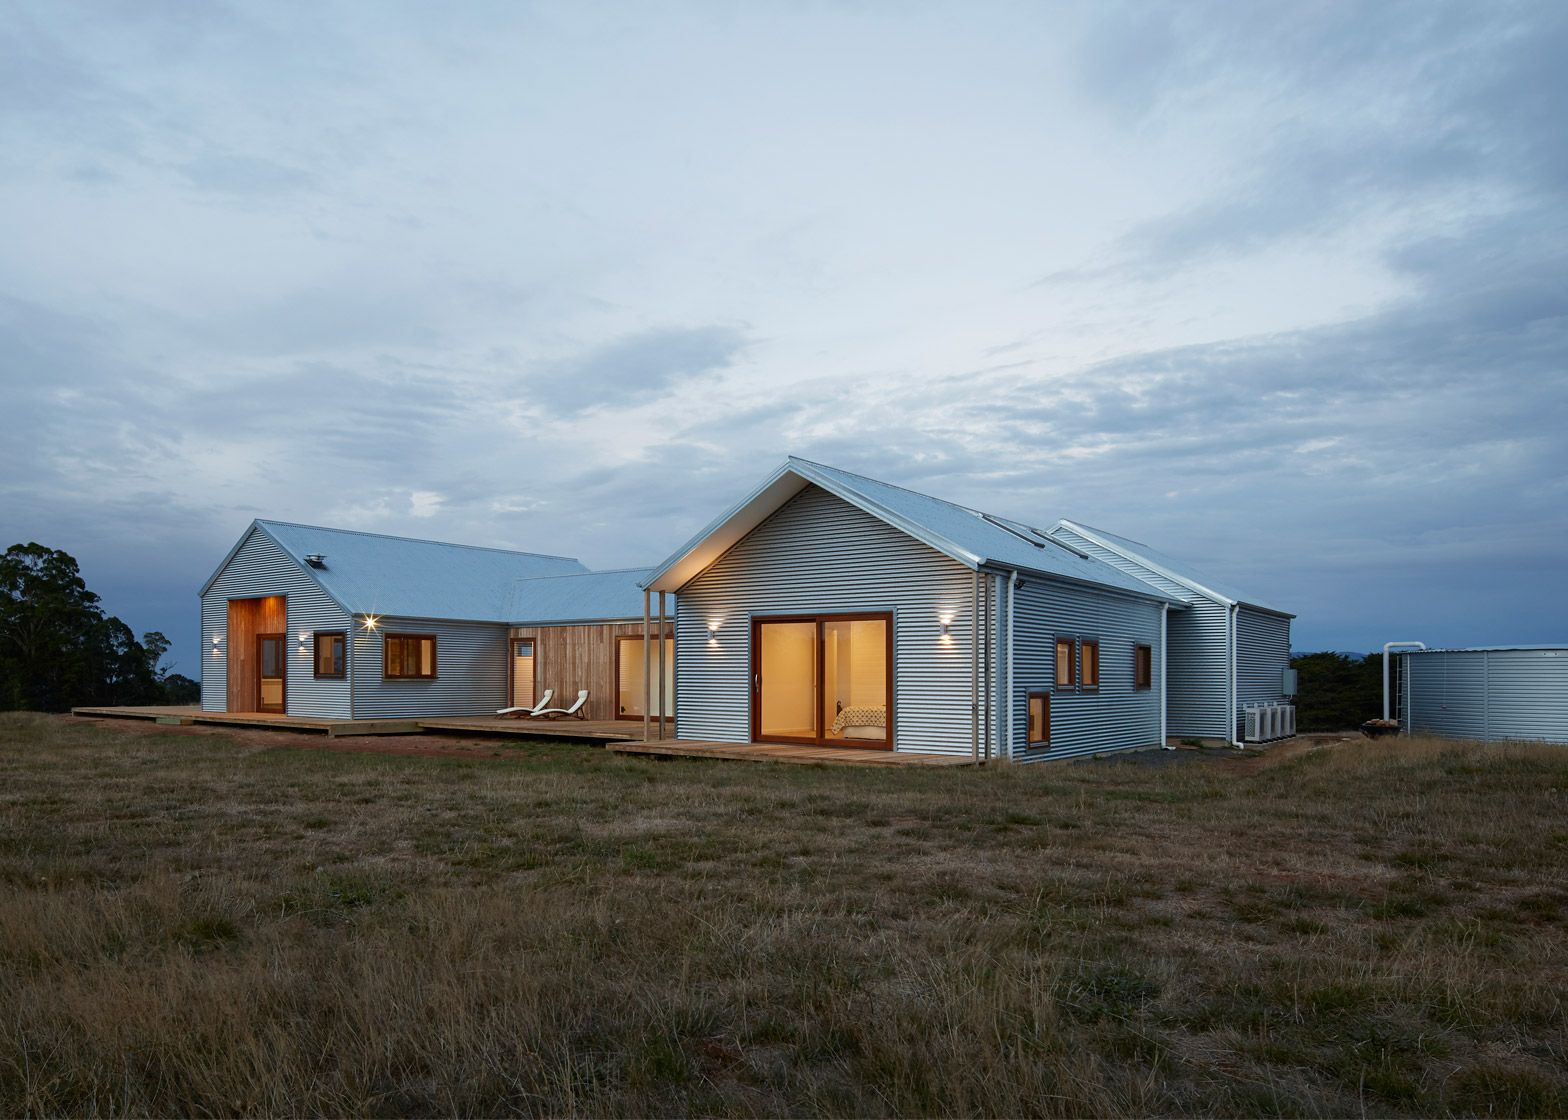 This Shed Inspired House In Australia Features A Low